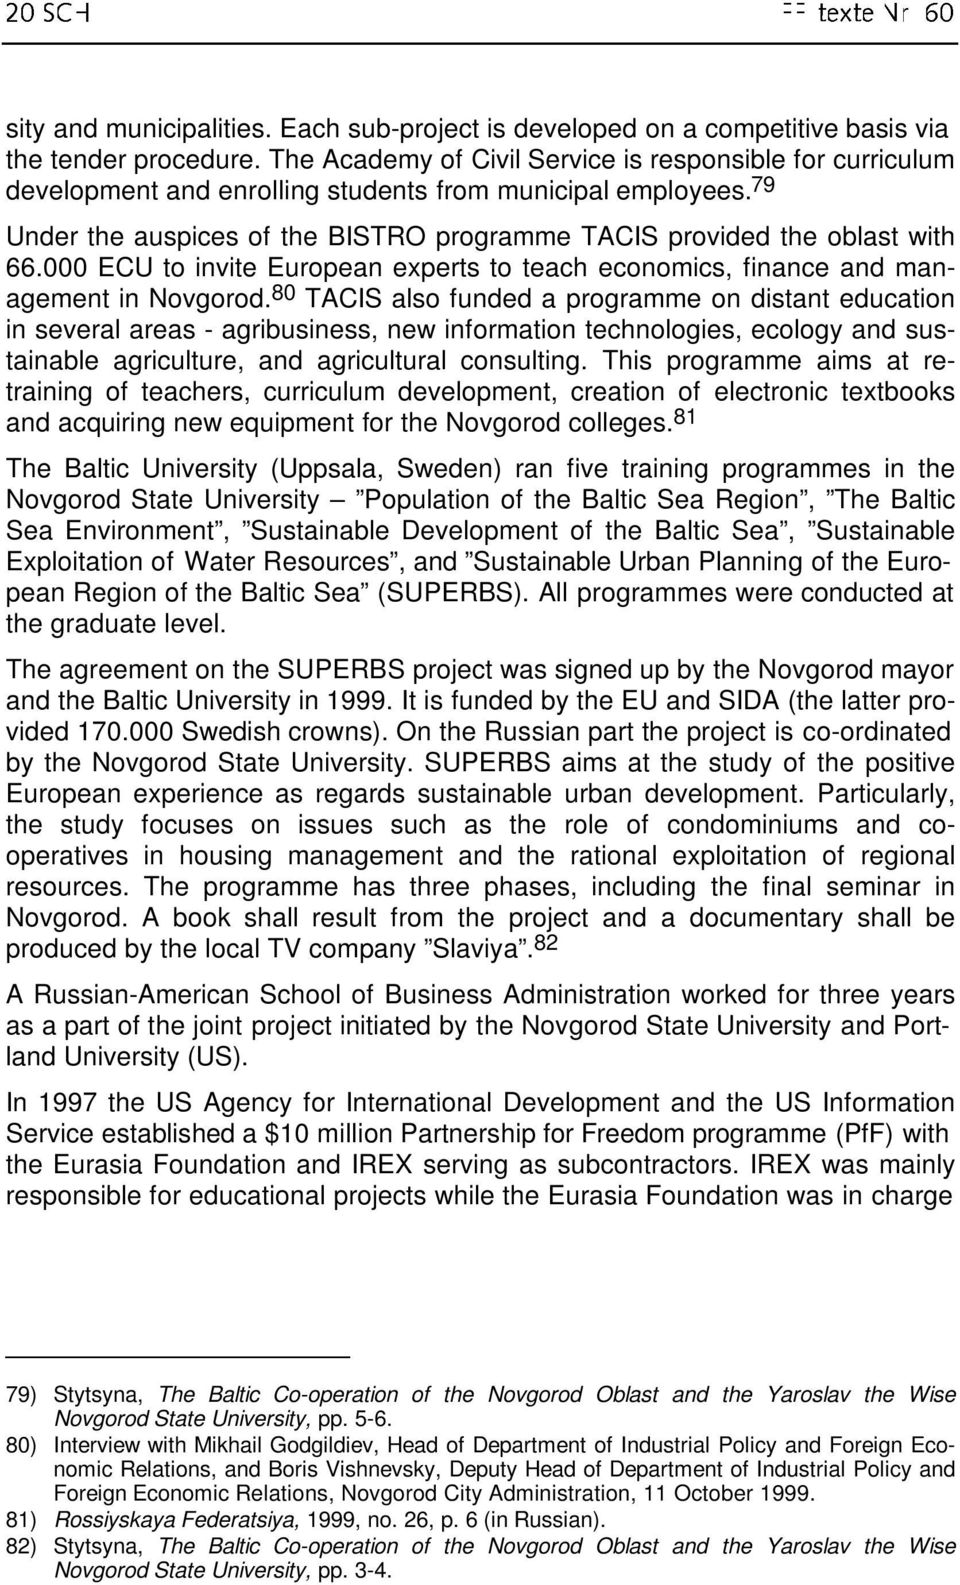 000 ECU to invite European experts to teach economics, finance and management in Novgorod.